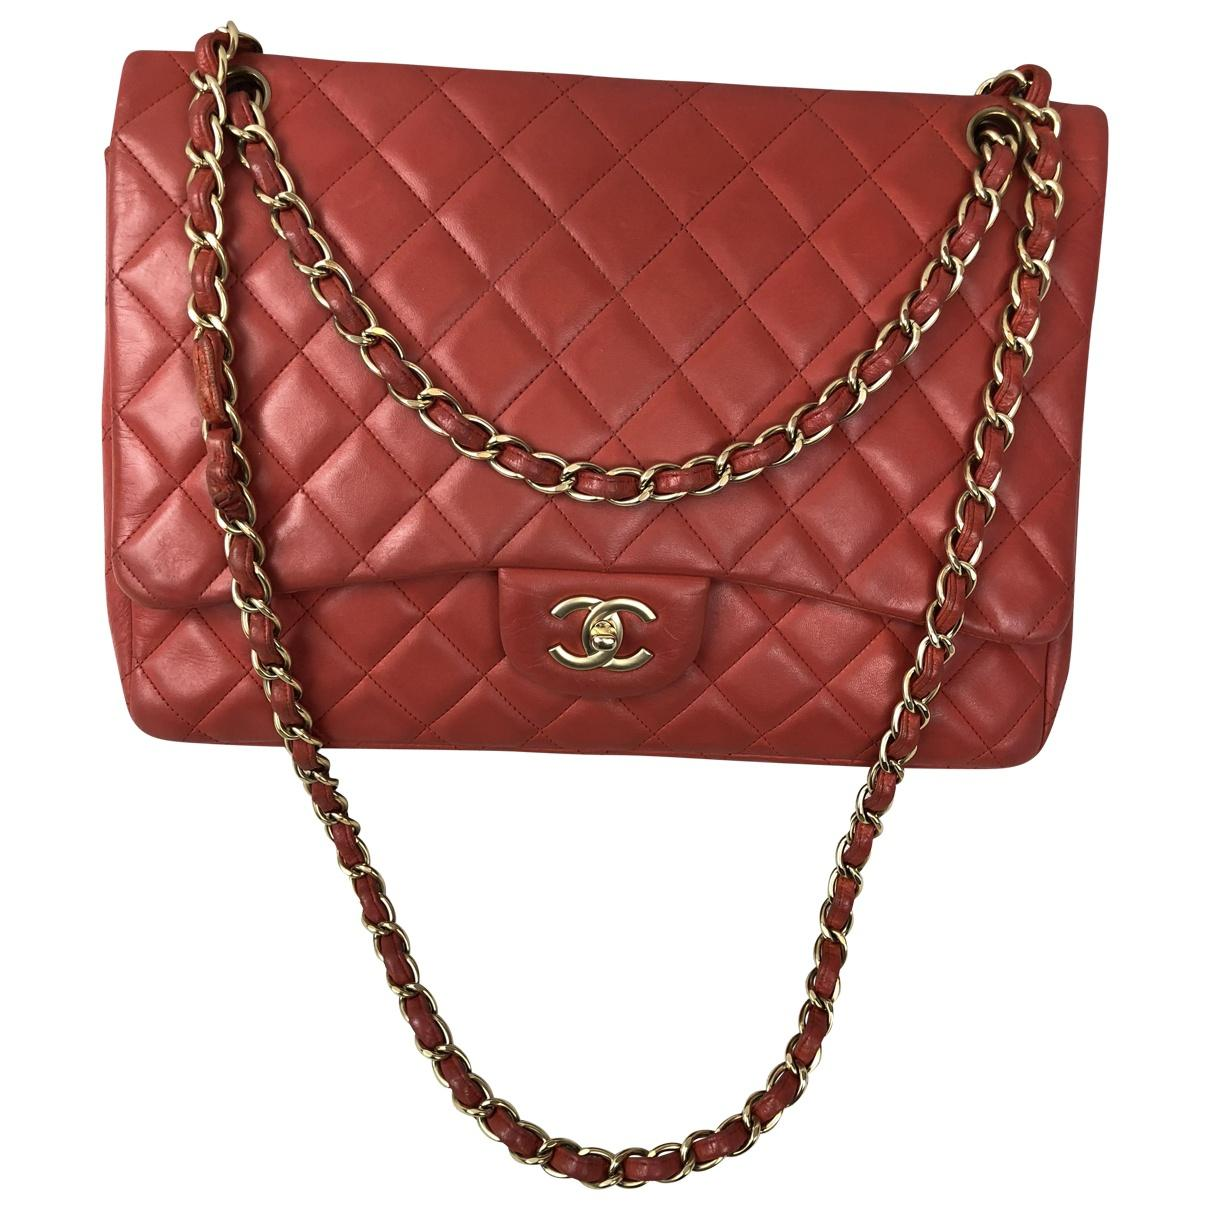 29a232636739 Lyst - Chanel Timeless Leather Crossbody Bag in Red